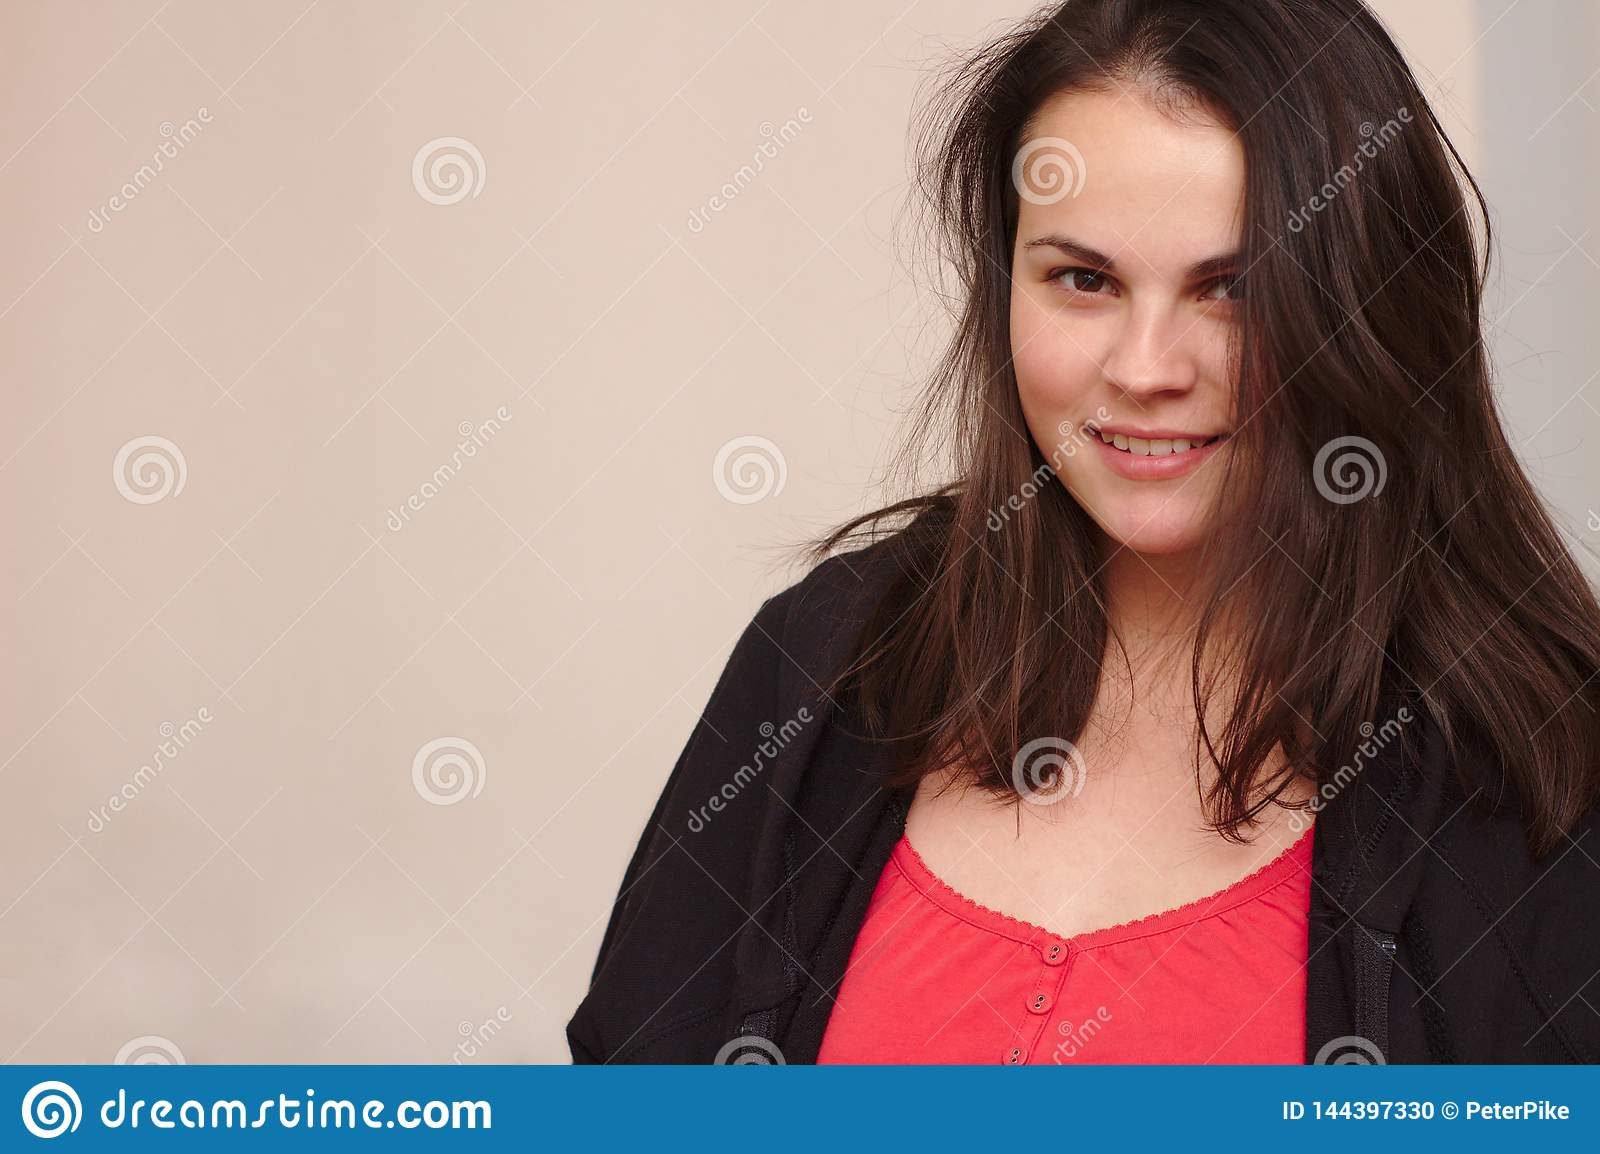 smiling young woman in casual clothes. Portrait plus size model on background